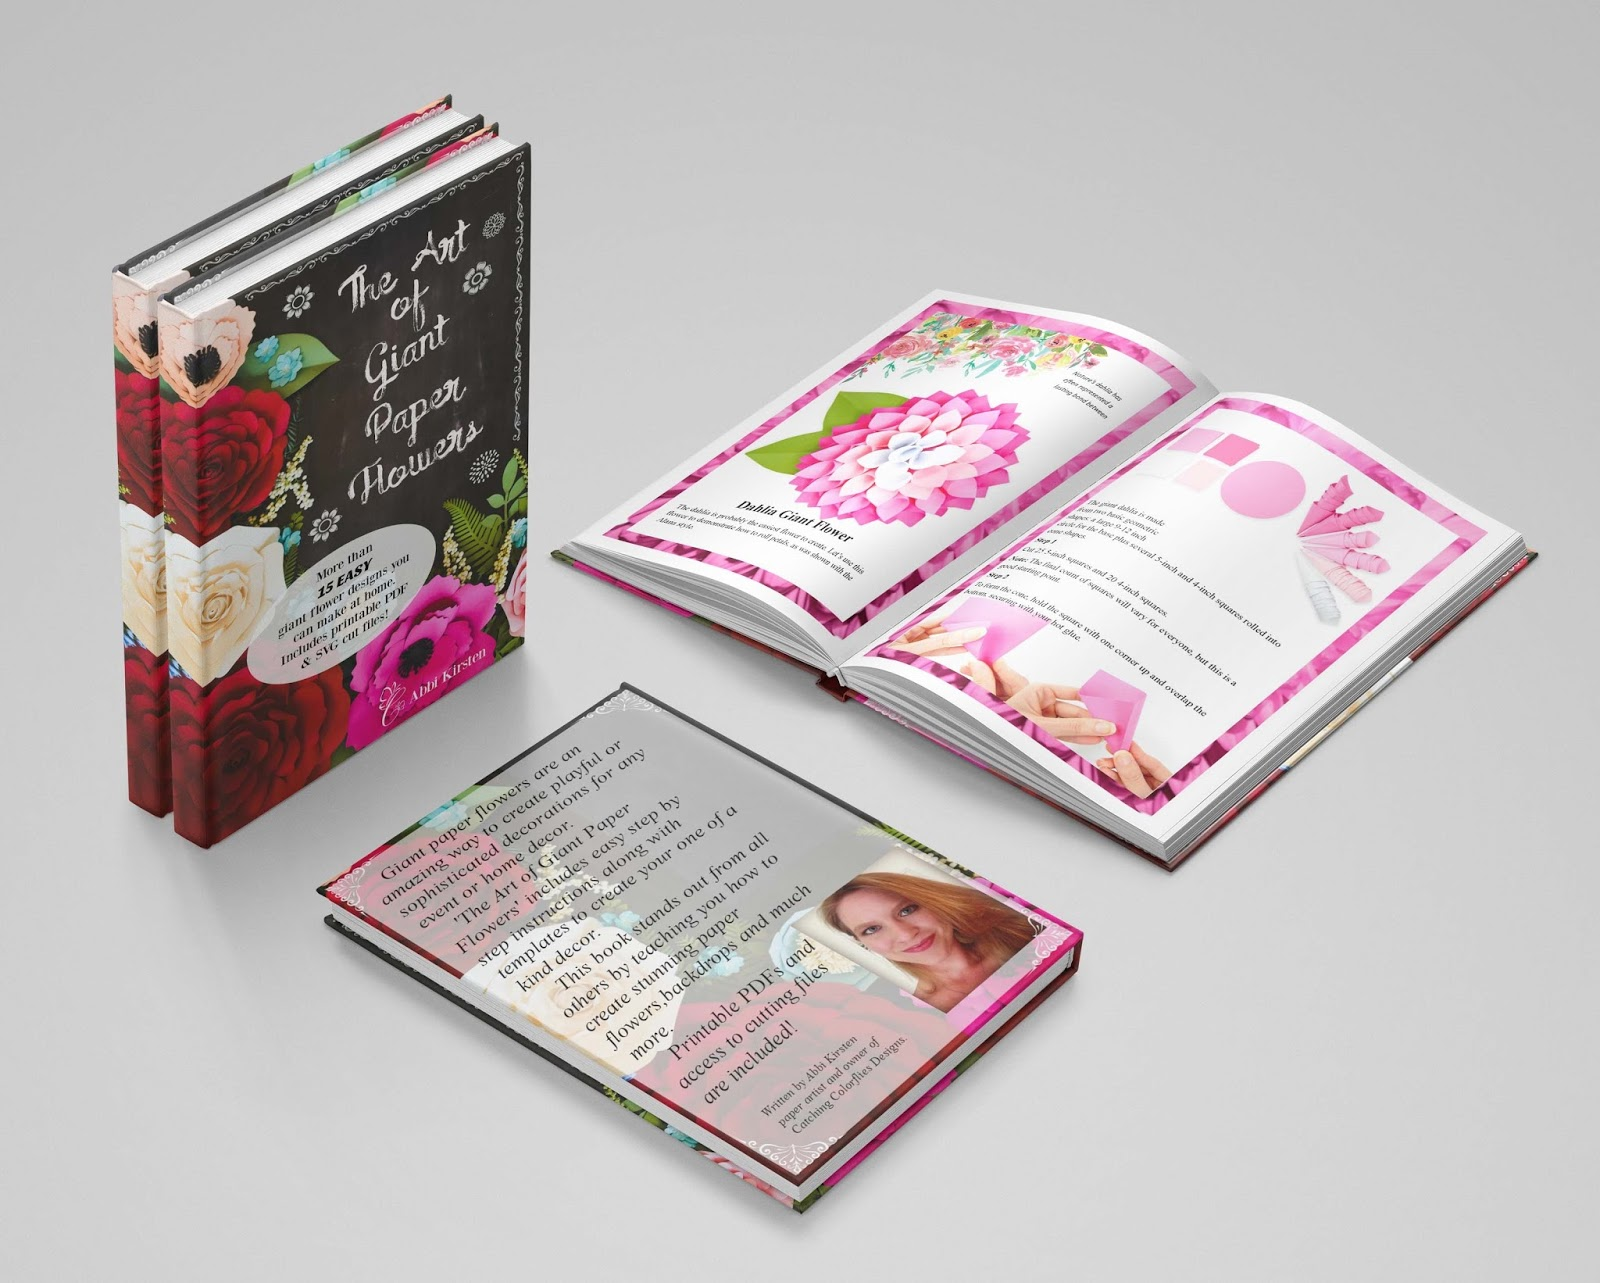 Mamas Gone Crafty Ebook Now Available